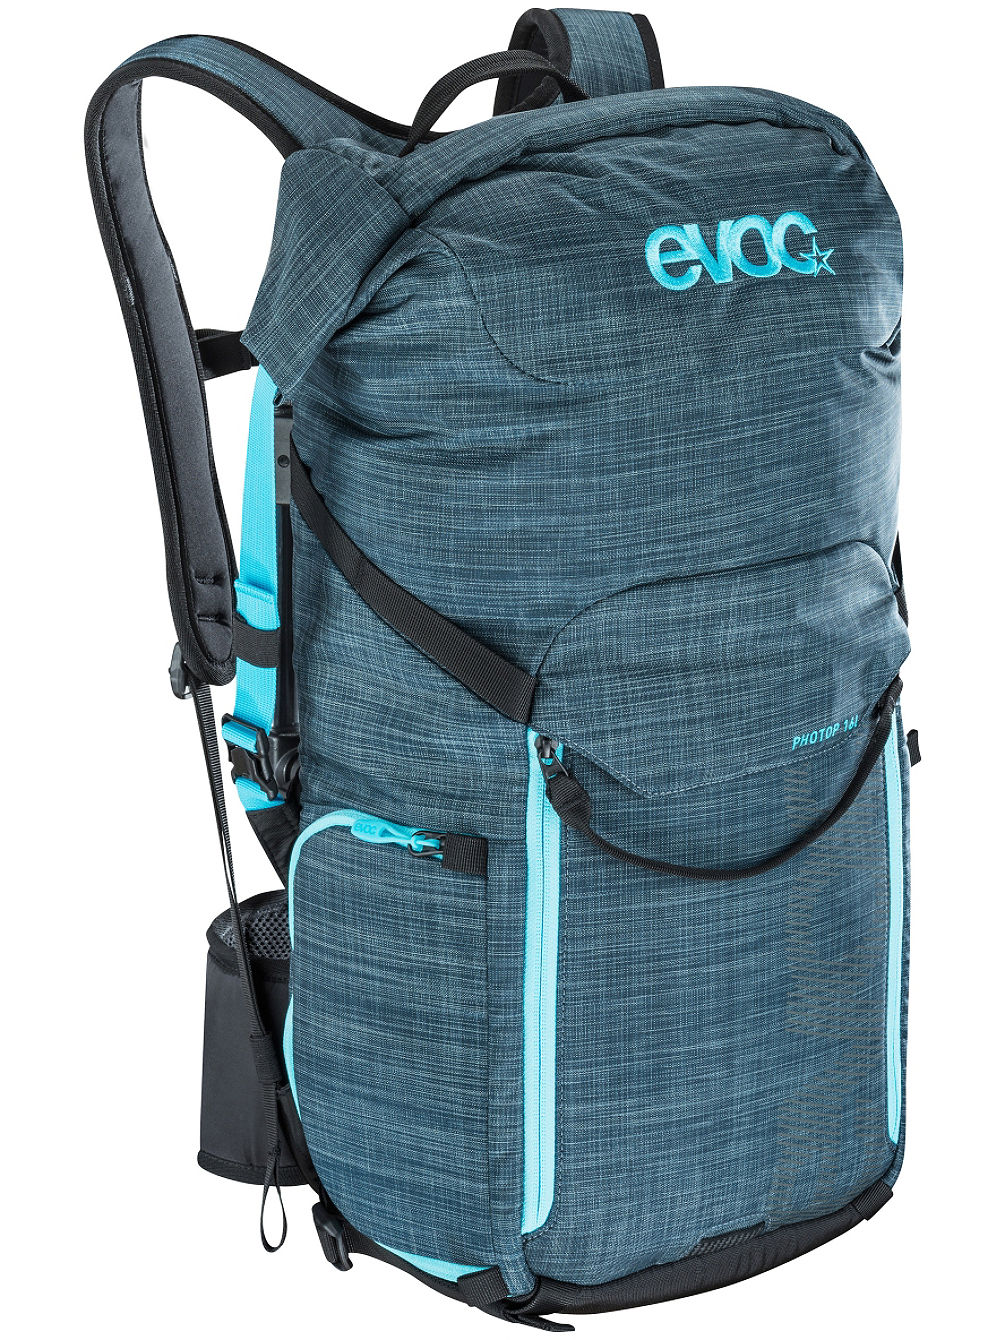 Photop 16L Camera Rucksack